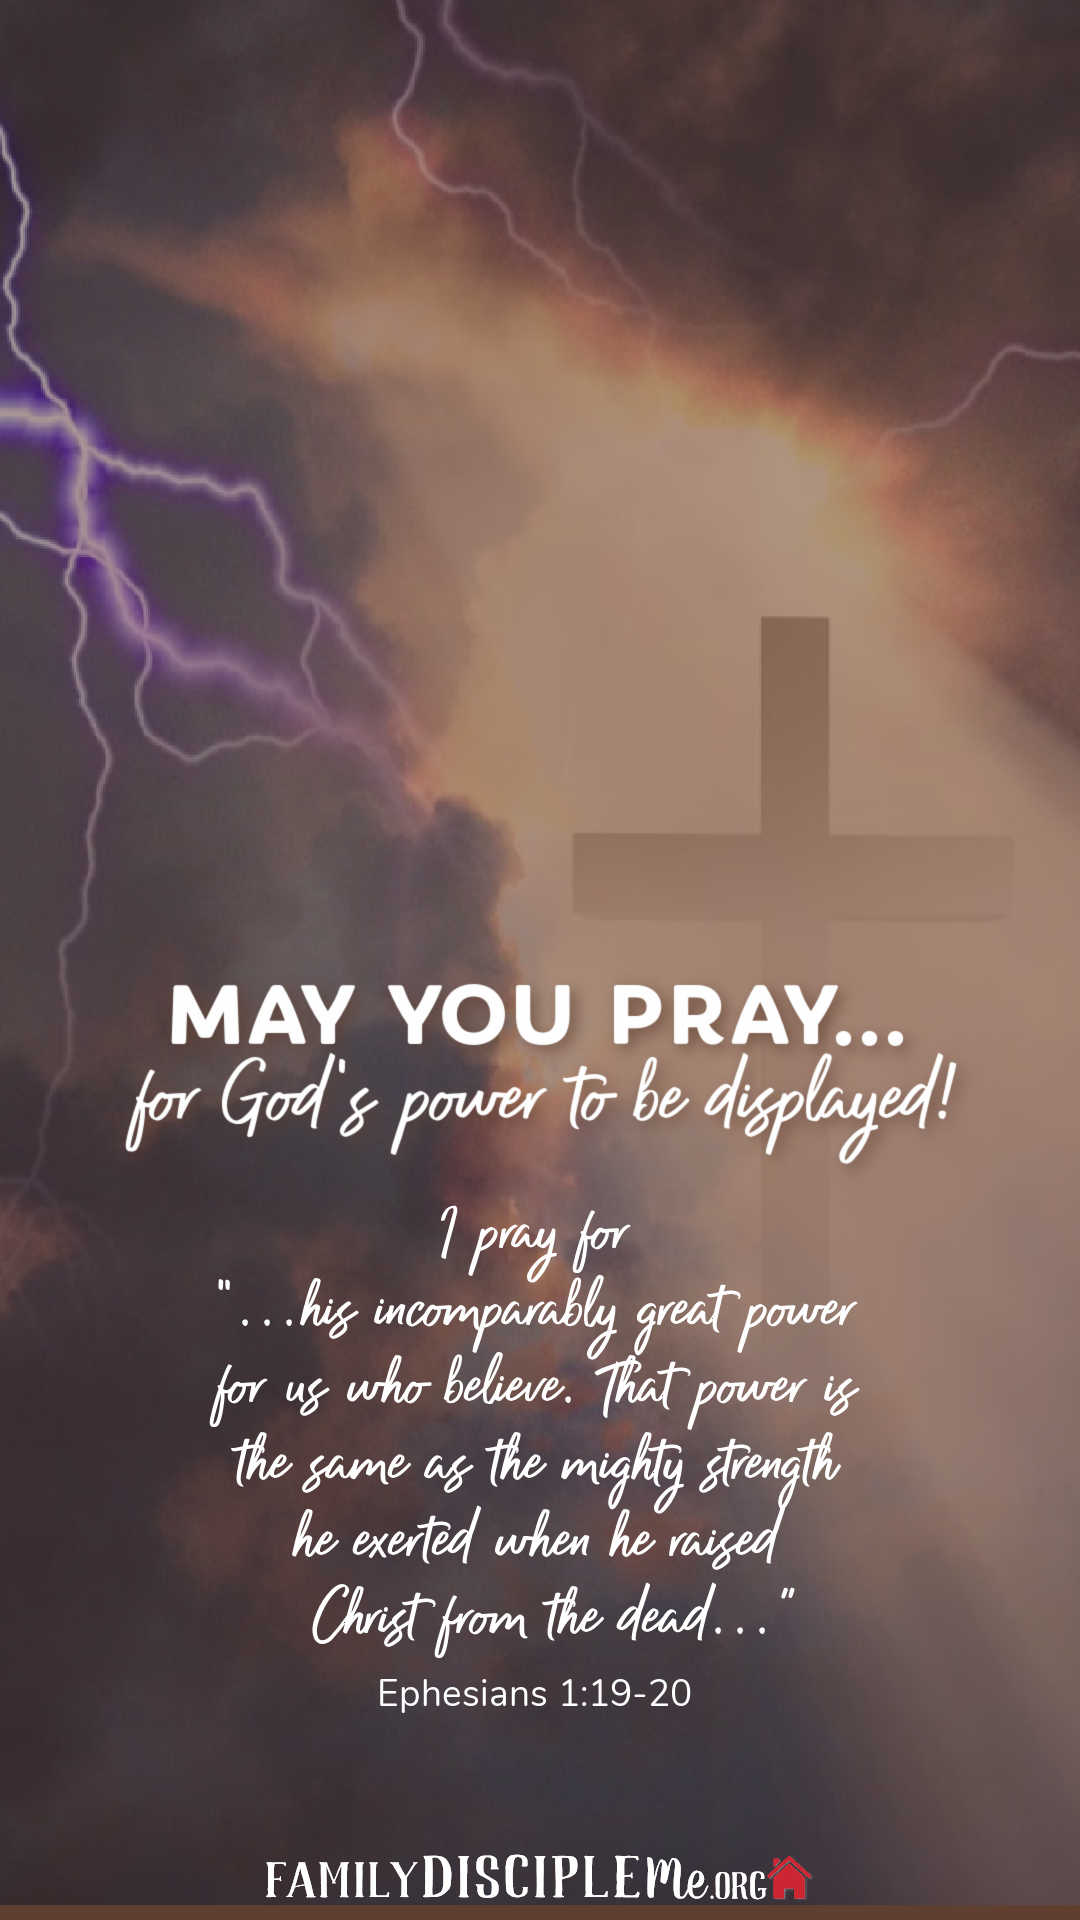 May You Pray...for God's Power to Be Displayed!